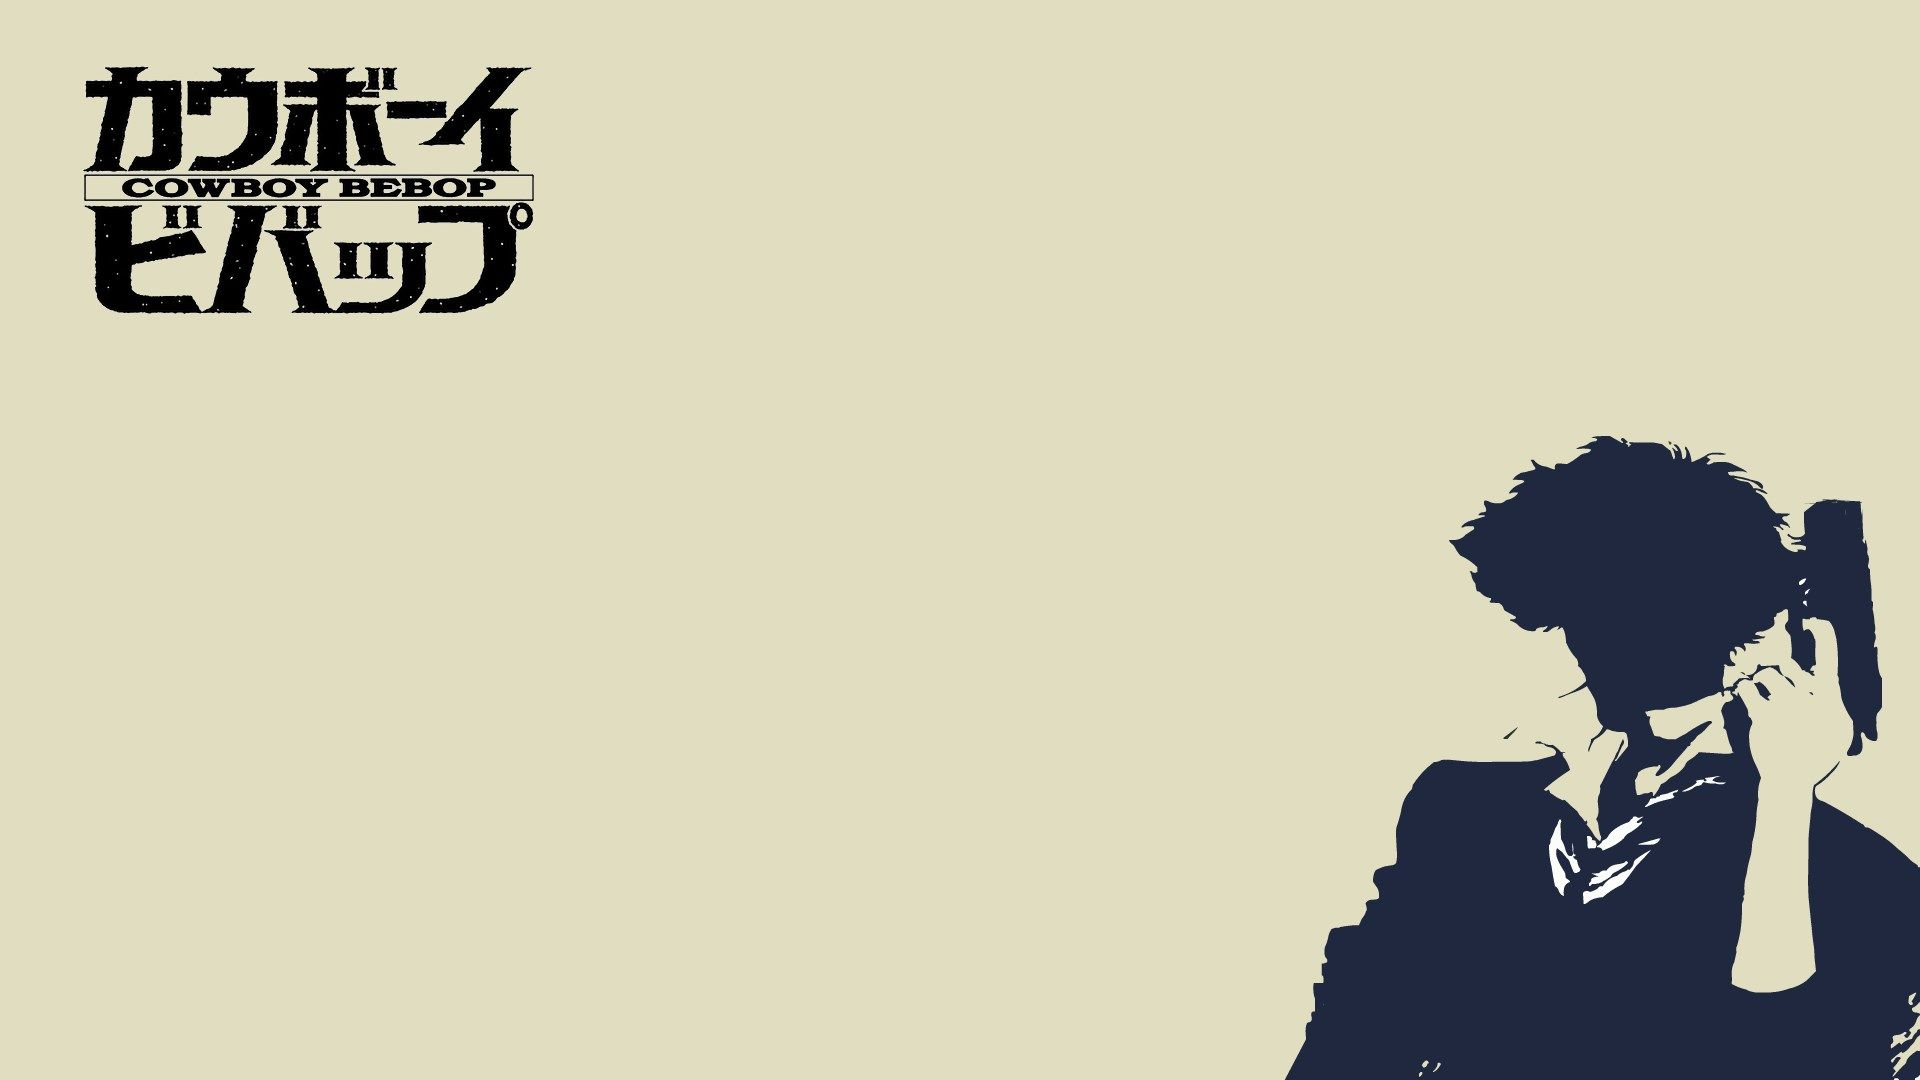 Pictures Desktop Cowboy Bebop Hd Wallpapers Cowboy Bebop Cowboy Bebop Wallpapers Bebop